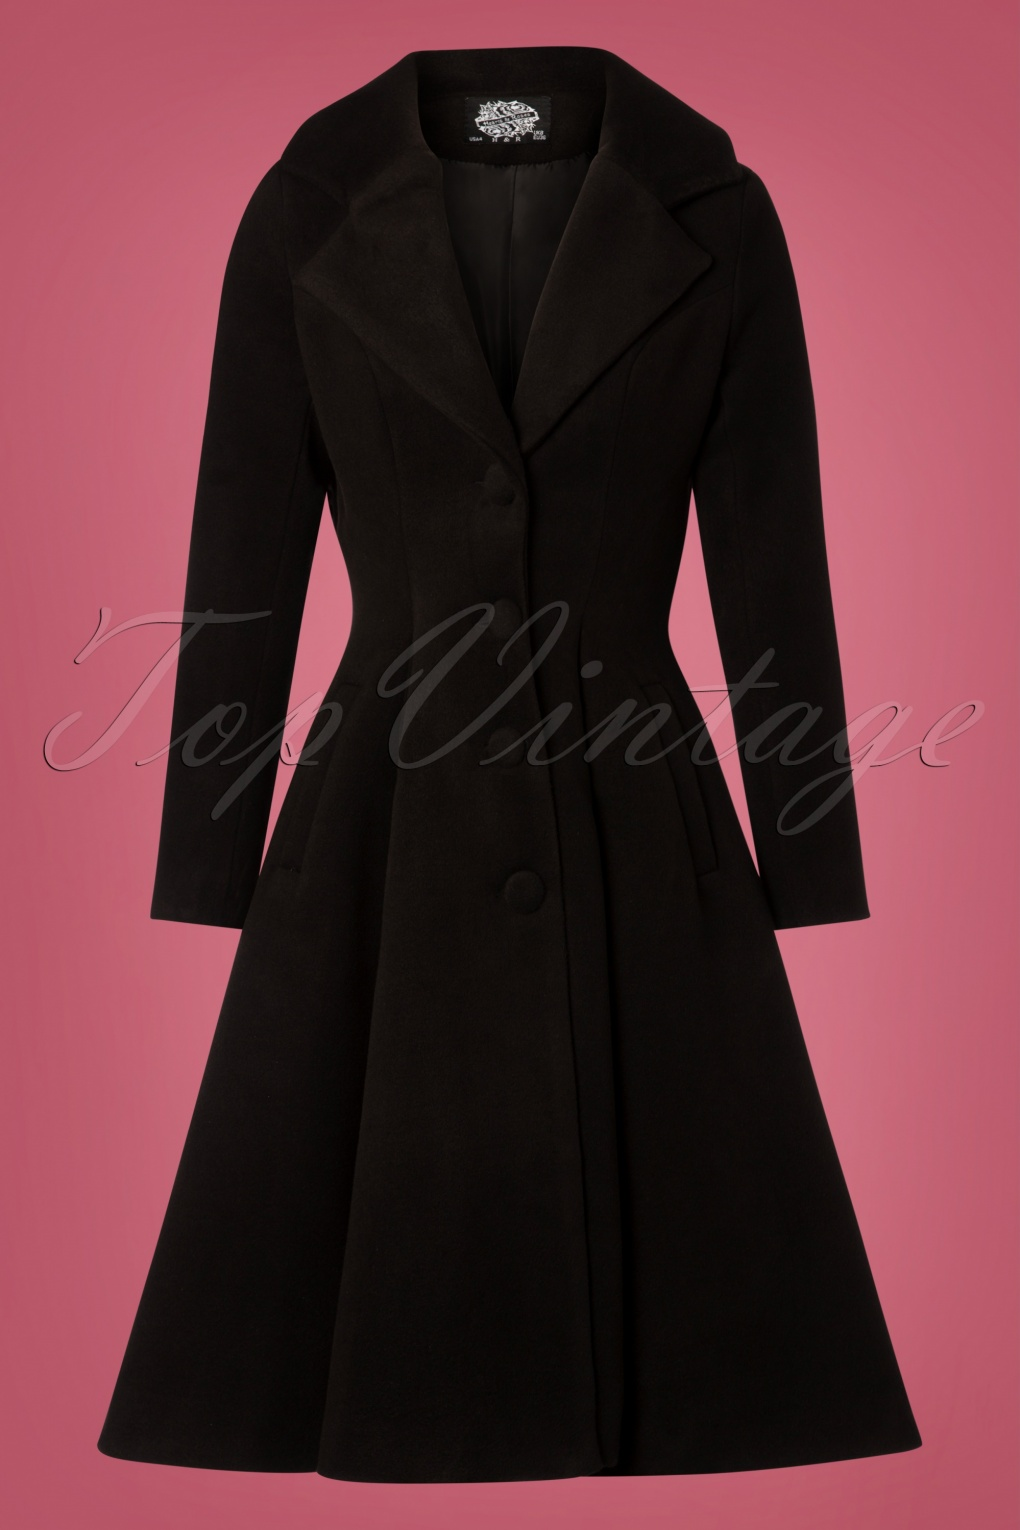 Vintage Coats & Jackets | Retro Coats and Jackets 50s Lauren Swing Coat in Black £97.49 AT vintagedancer.com